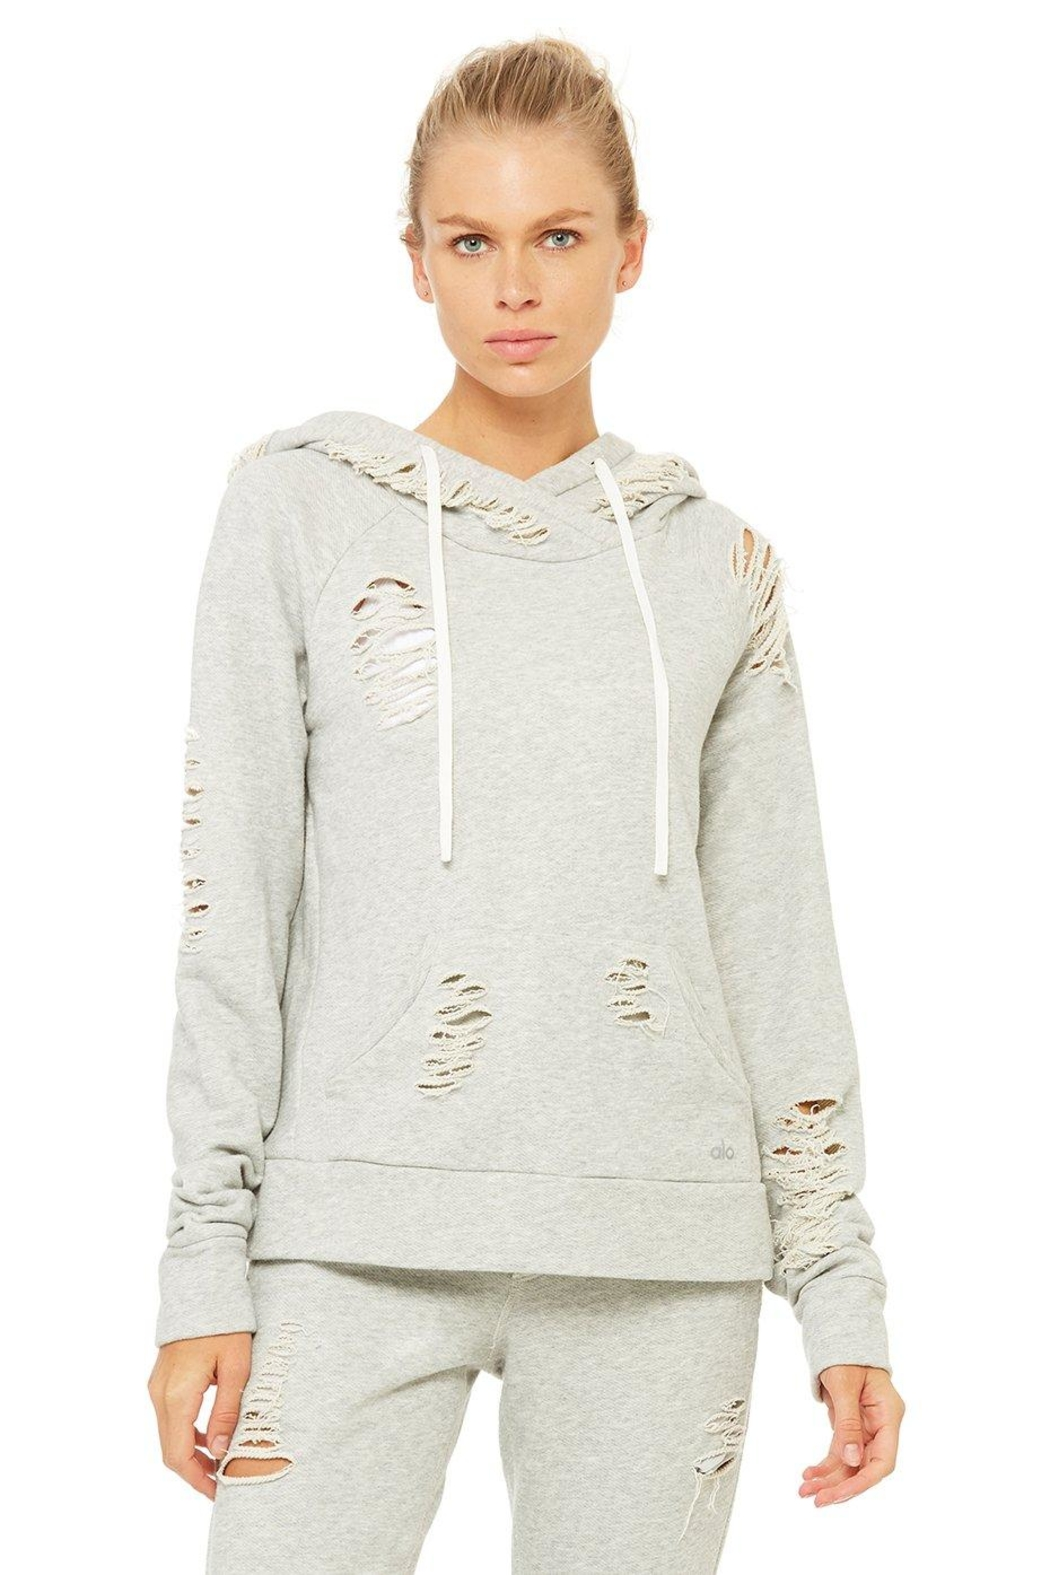 ALO Yoga Distressed Hoodie - Main Image